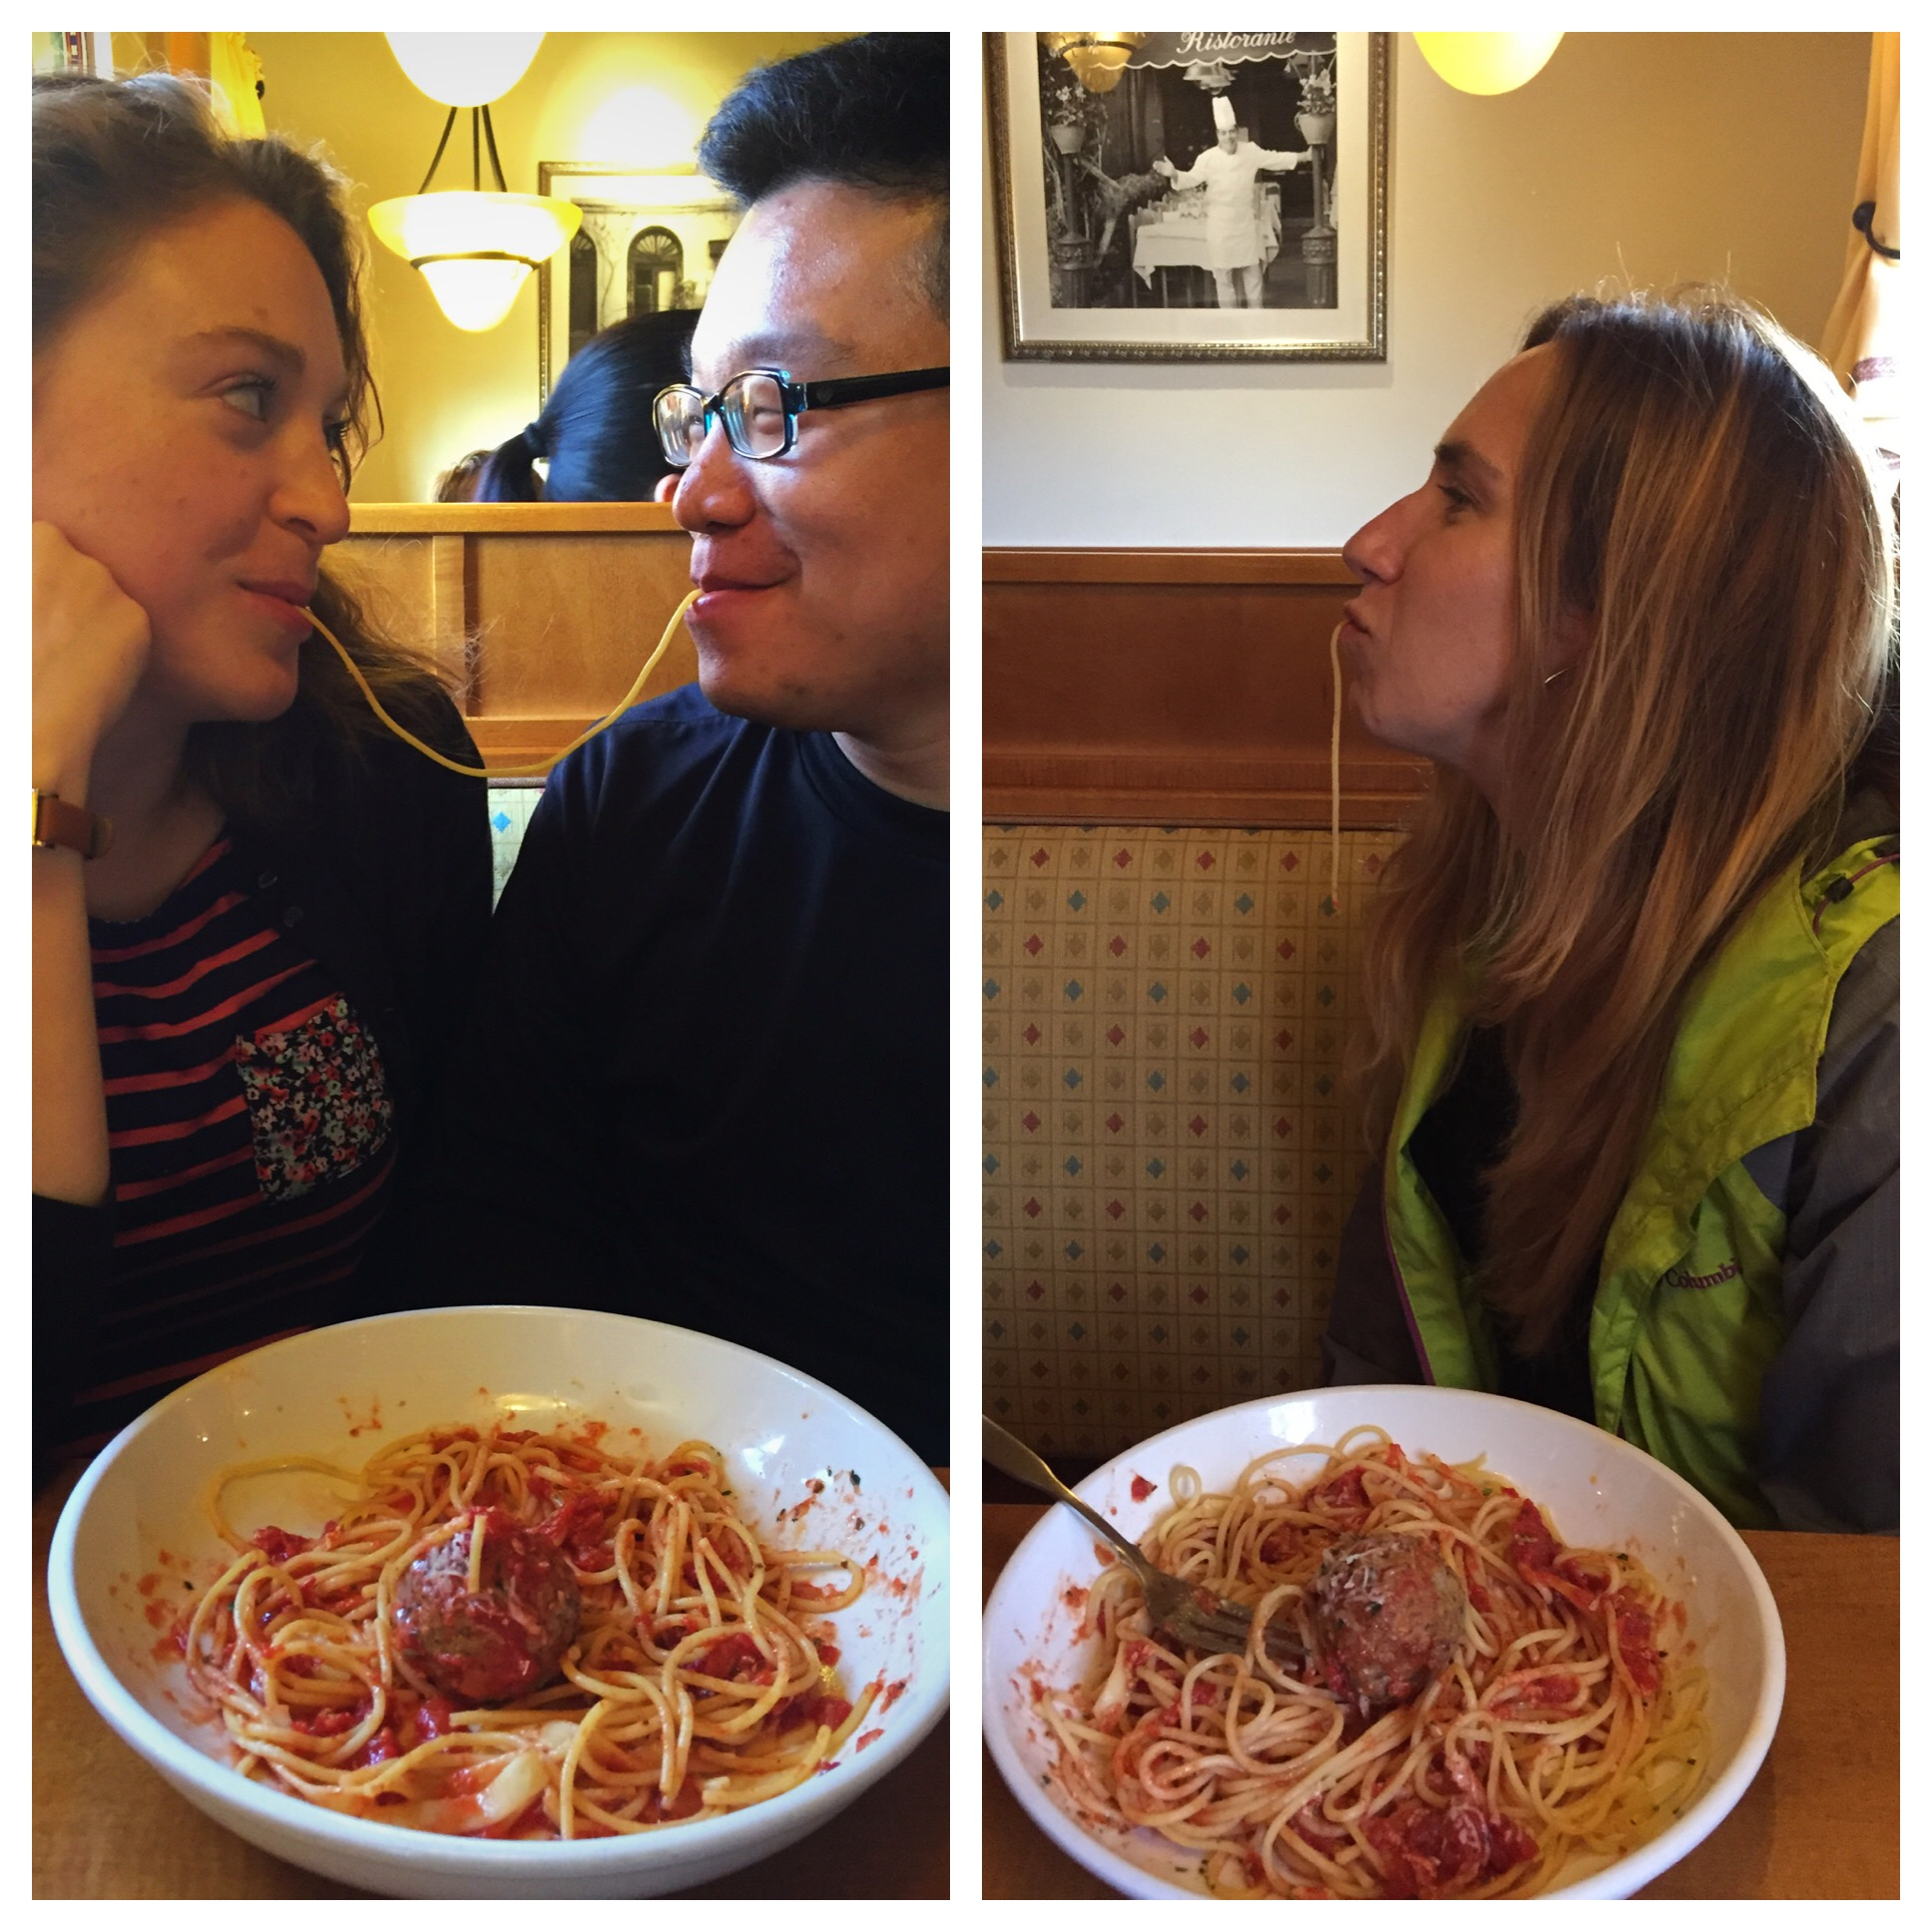 """As a joke I also liked to call this trip """"My Weekend as a Third Wheel"""" since it was just me, my roommate Jamie, and her boyfriend Steven. The only real benefit I got from it was this awesome photo op."""